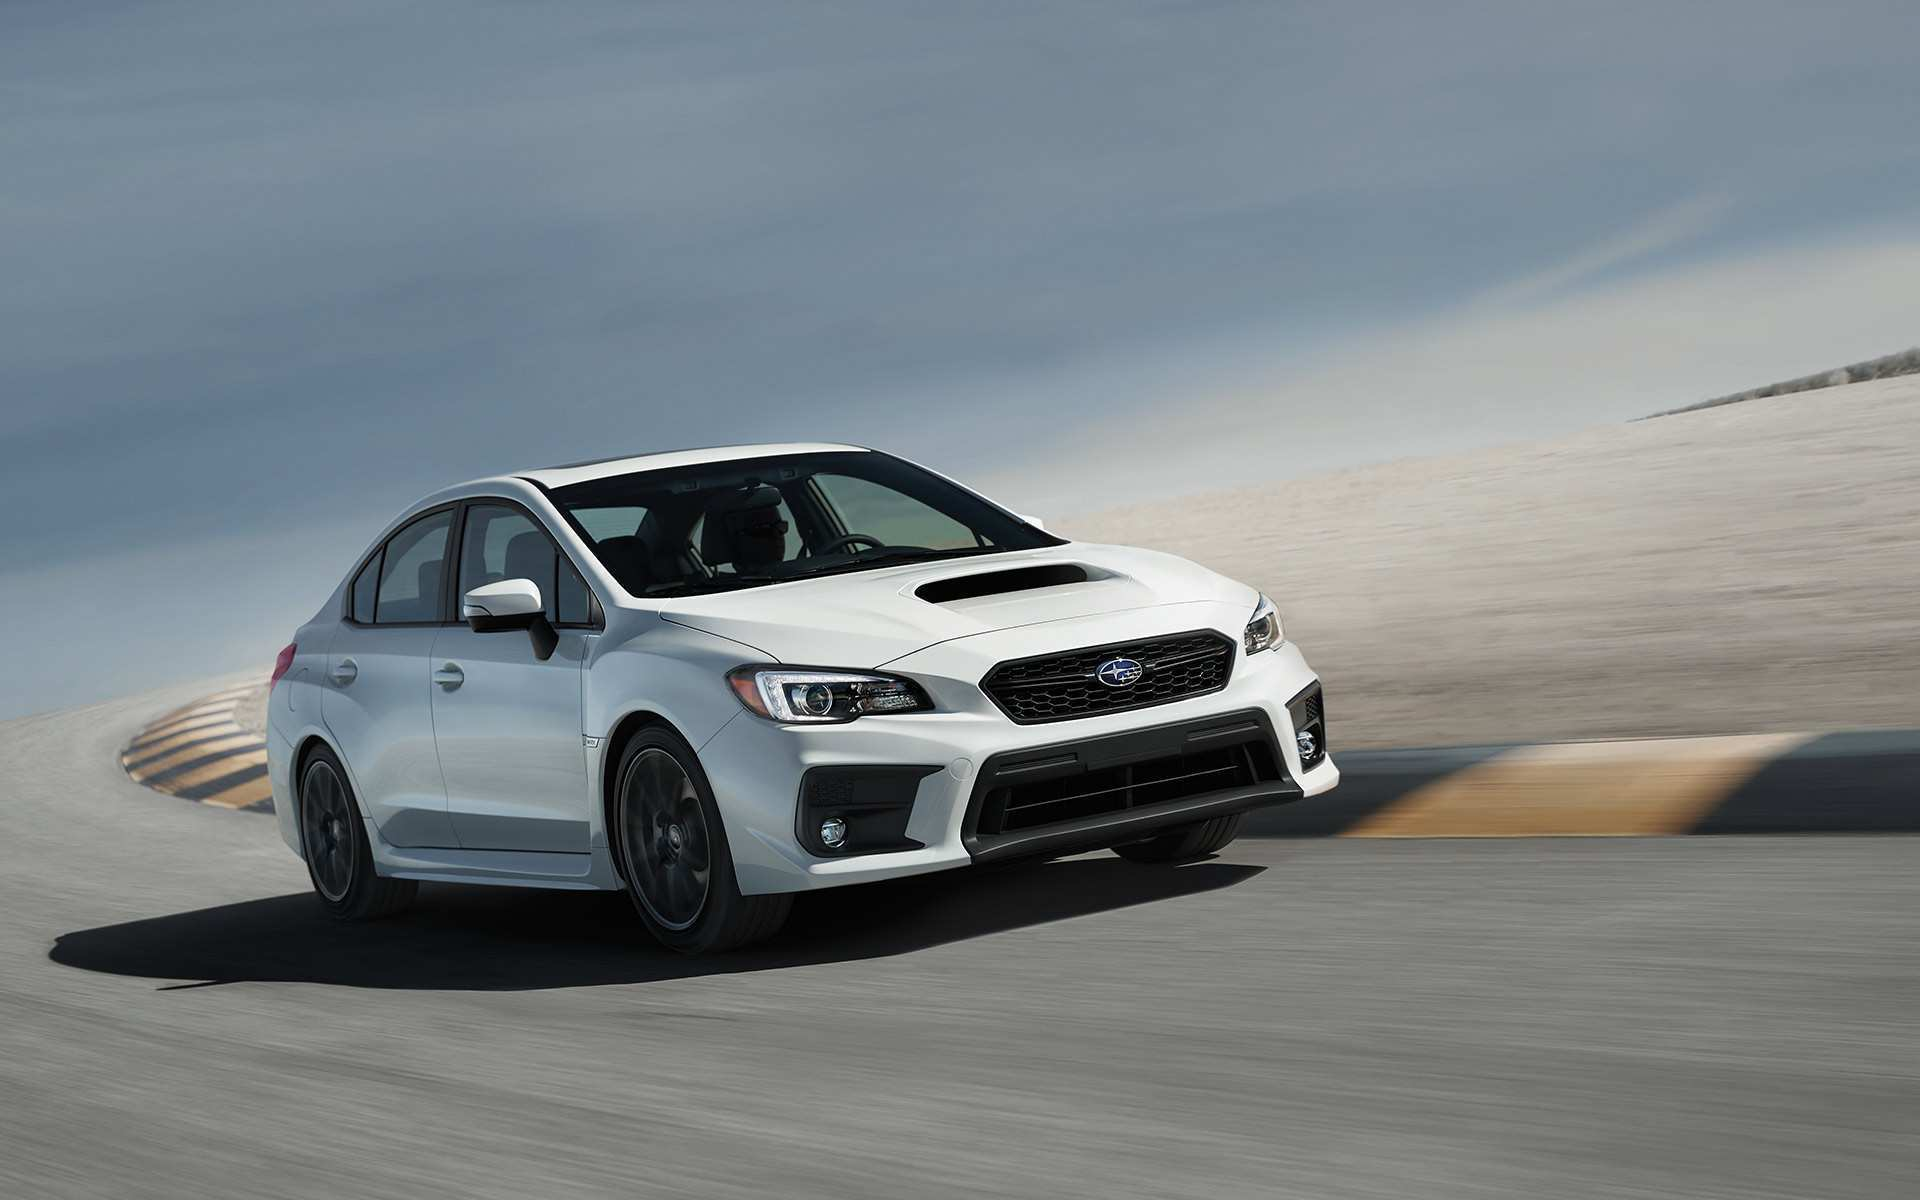 20 A 2019 Wrx Sti Hyperblue Price And Release Date